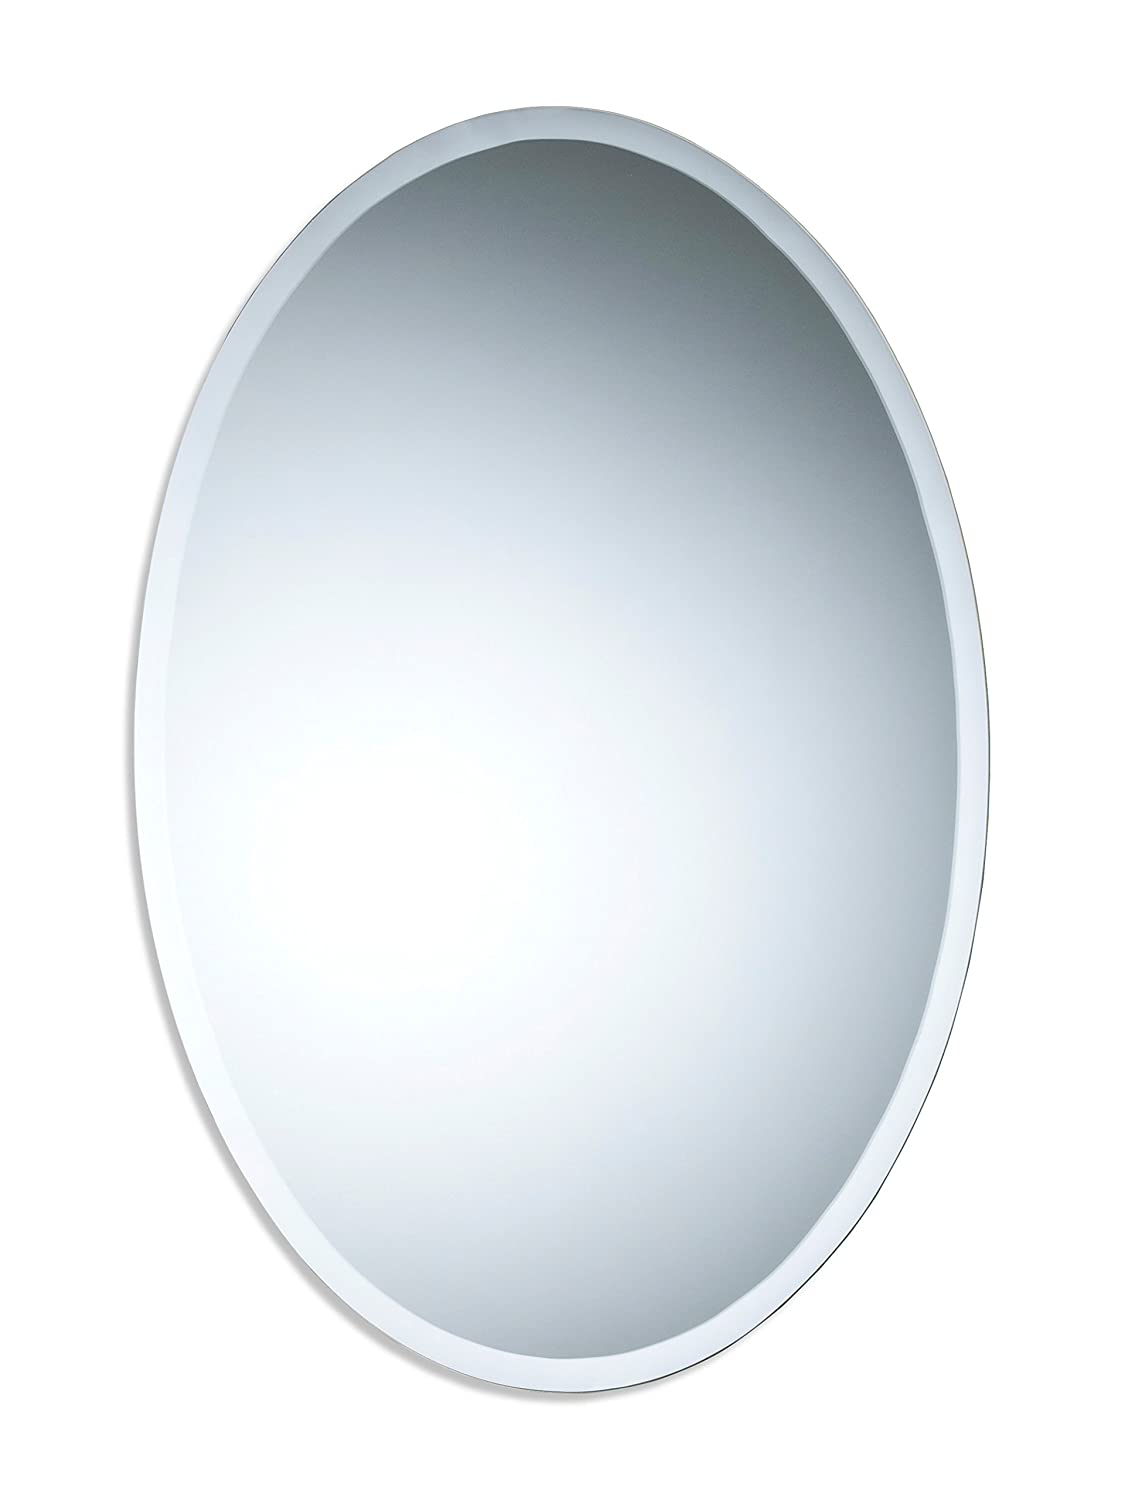 Neue Design Oval Bathroom Wall Mirror Modern Stylish With Bevel Plain 2 Sizes - 70cm x 50cm or 50cm x 40cm (50cm x 40cm)